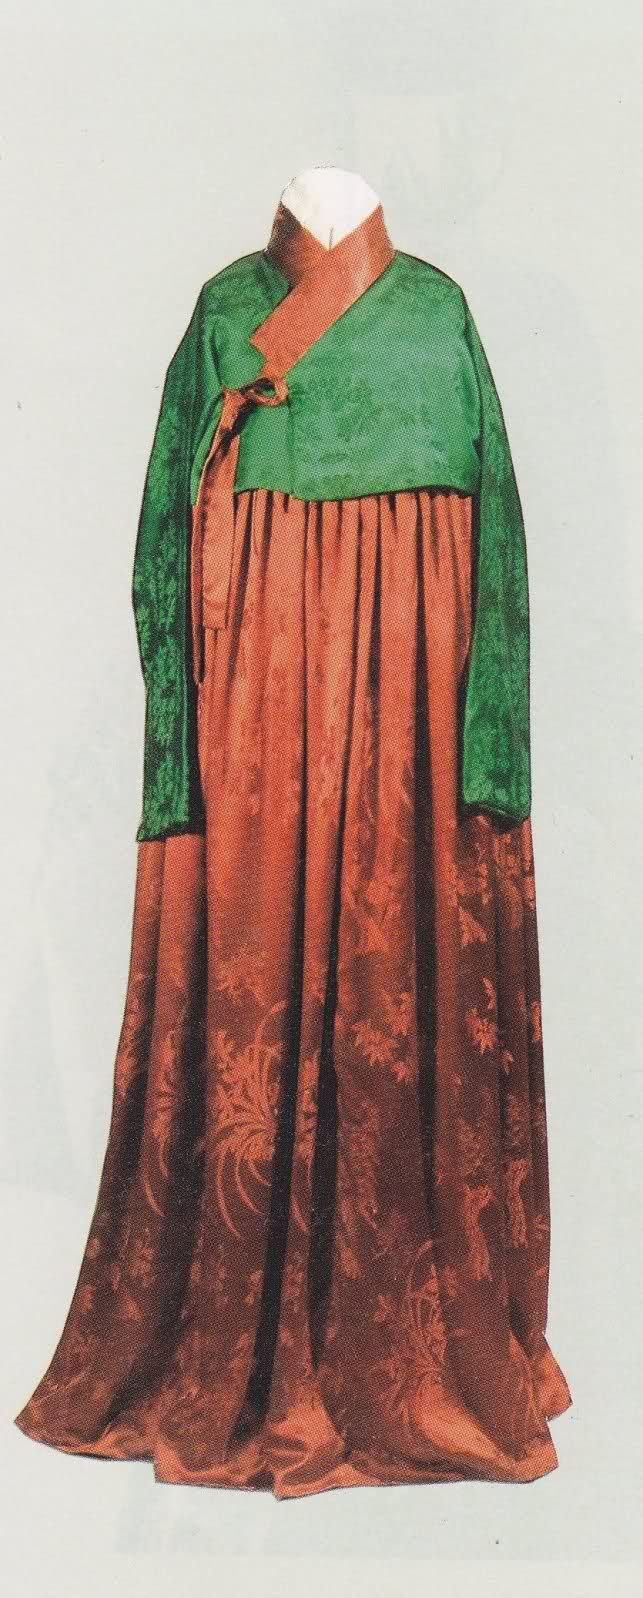 13th cent Hanbok